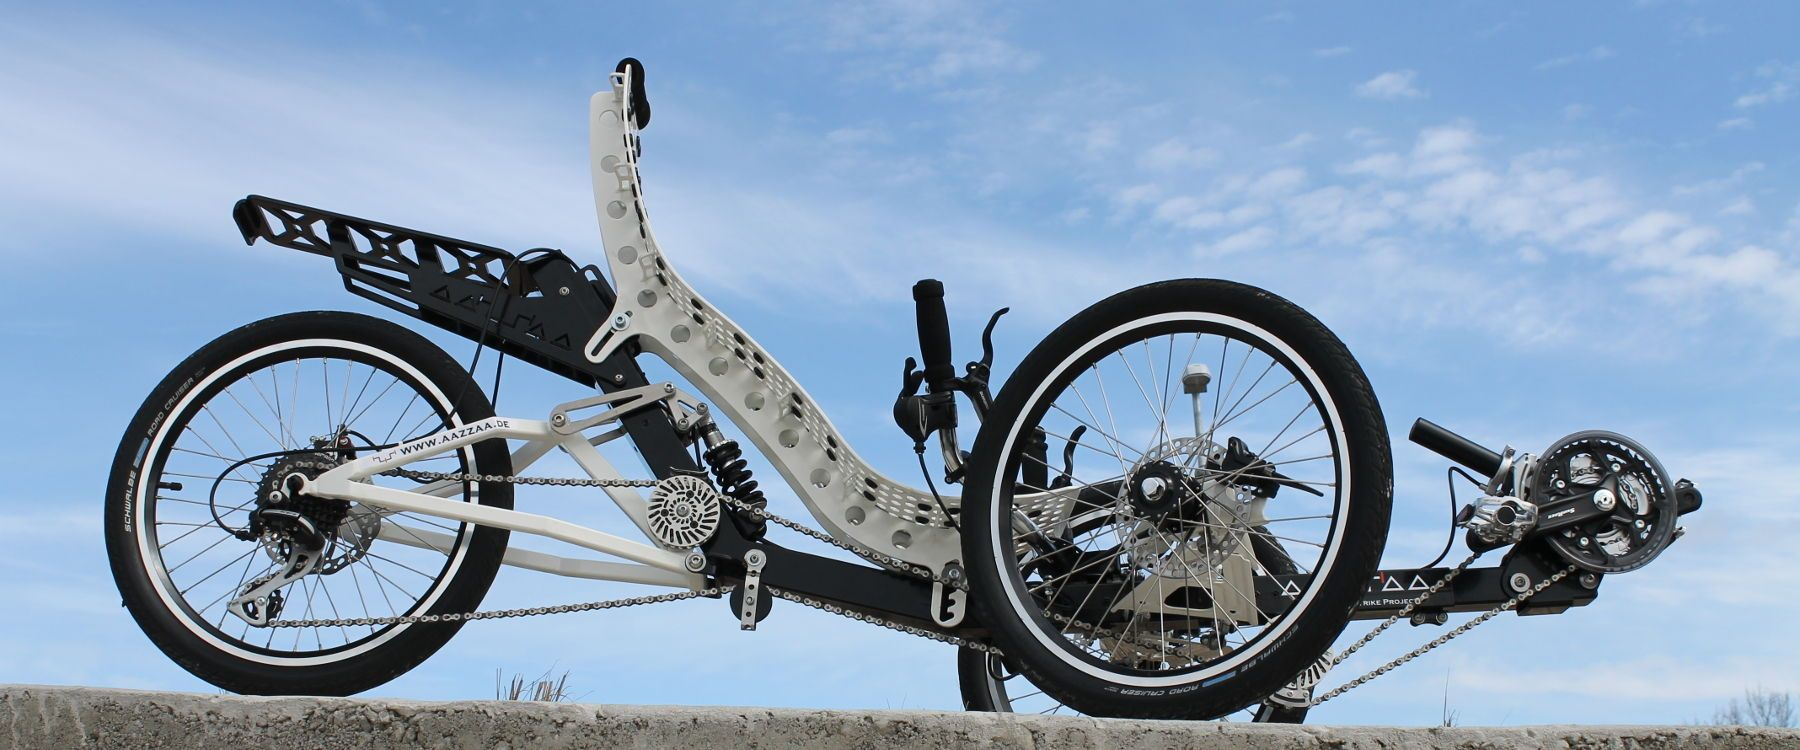 AAZZAA free full-suspension recumbent / trike project ...